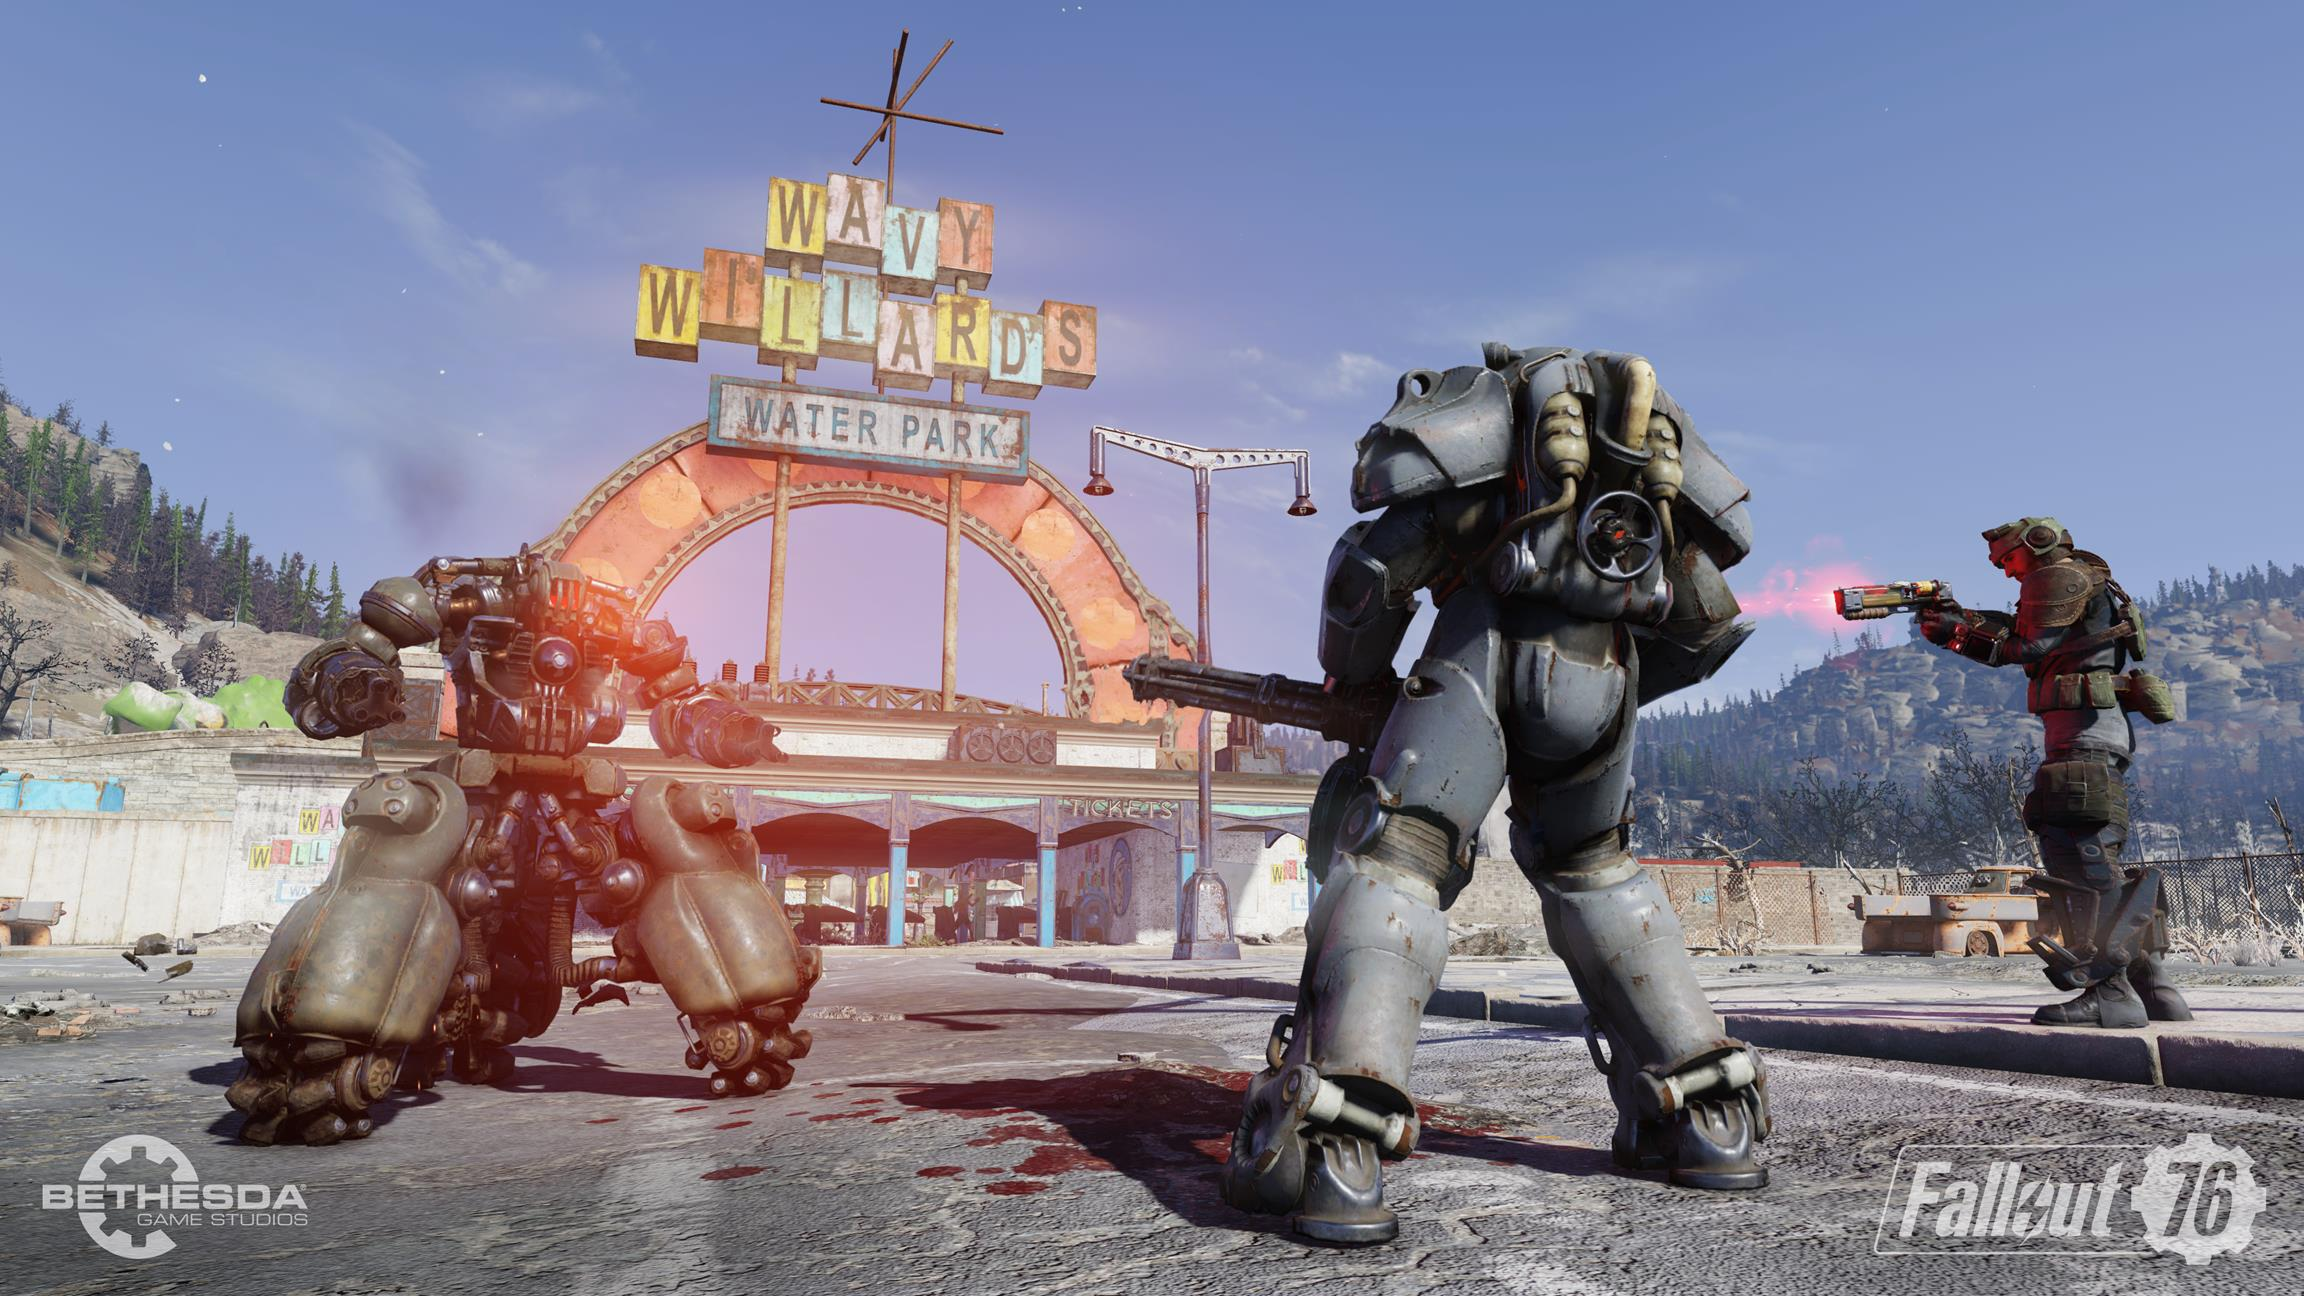 Check Out These New Fallout 76 Beta Screenshots VG247